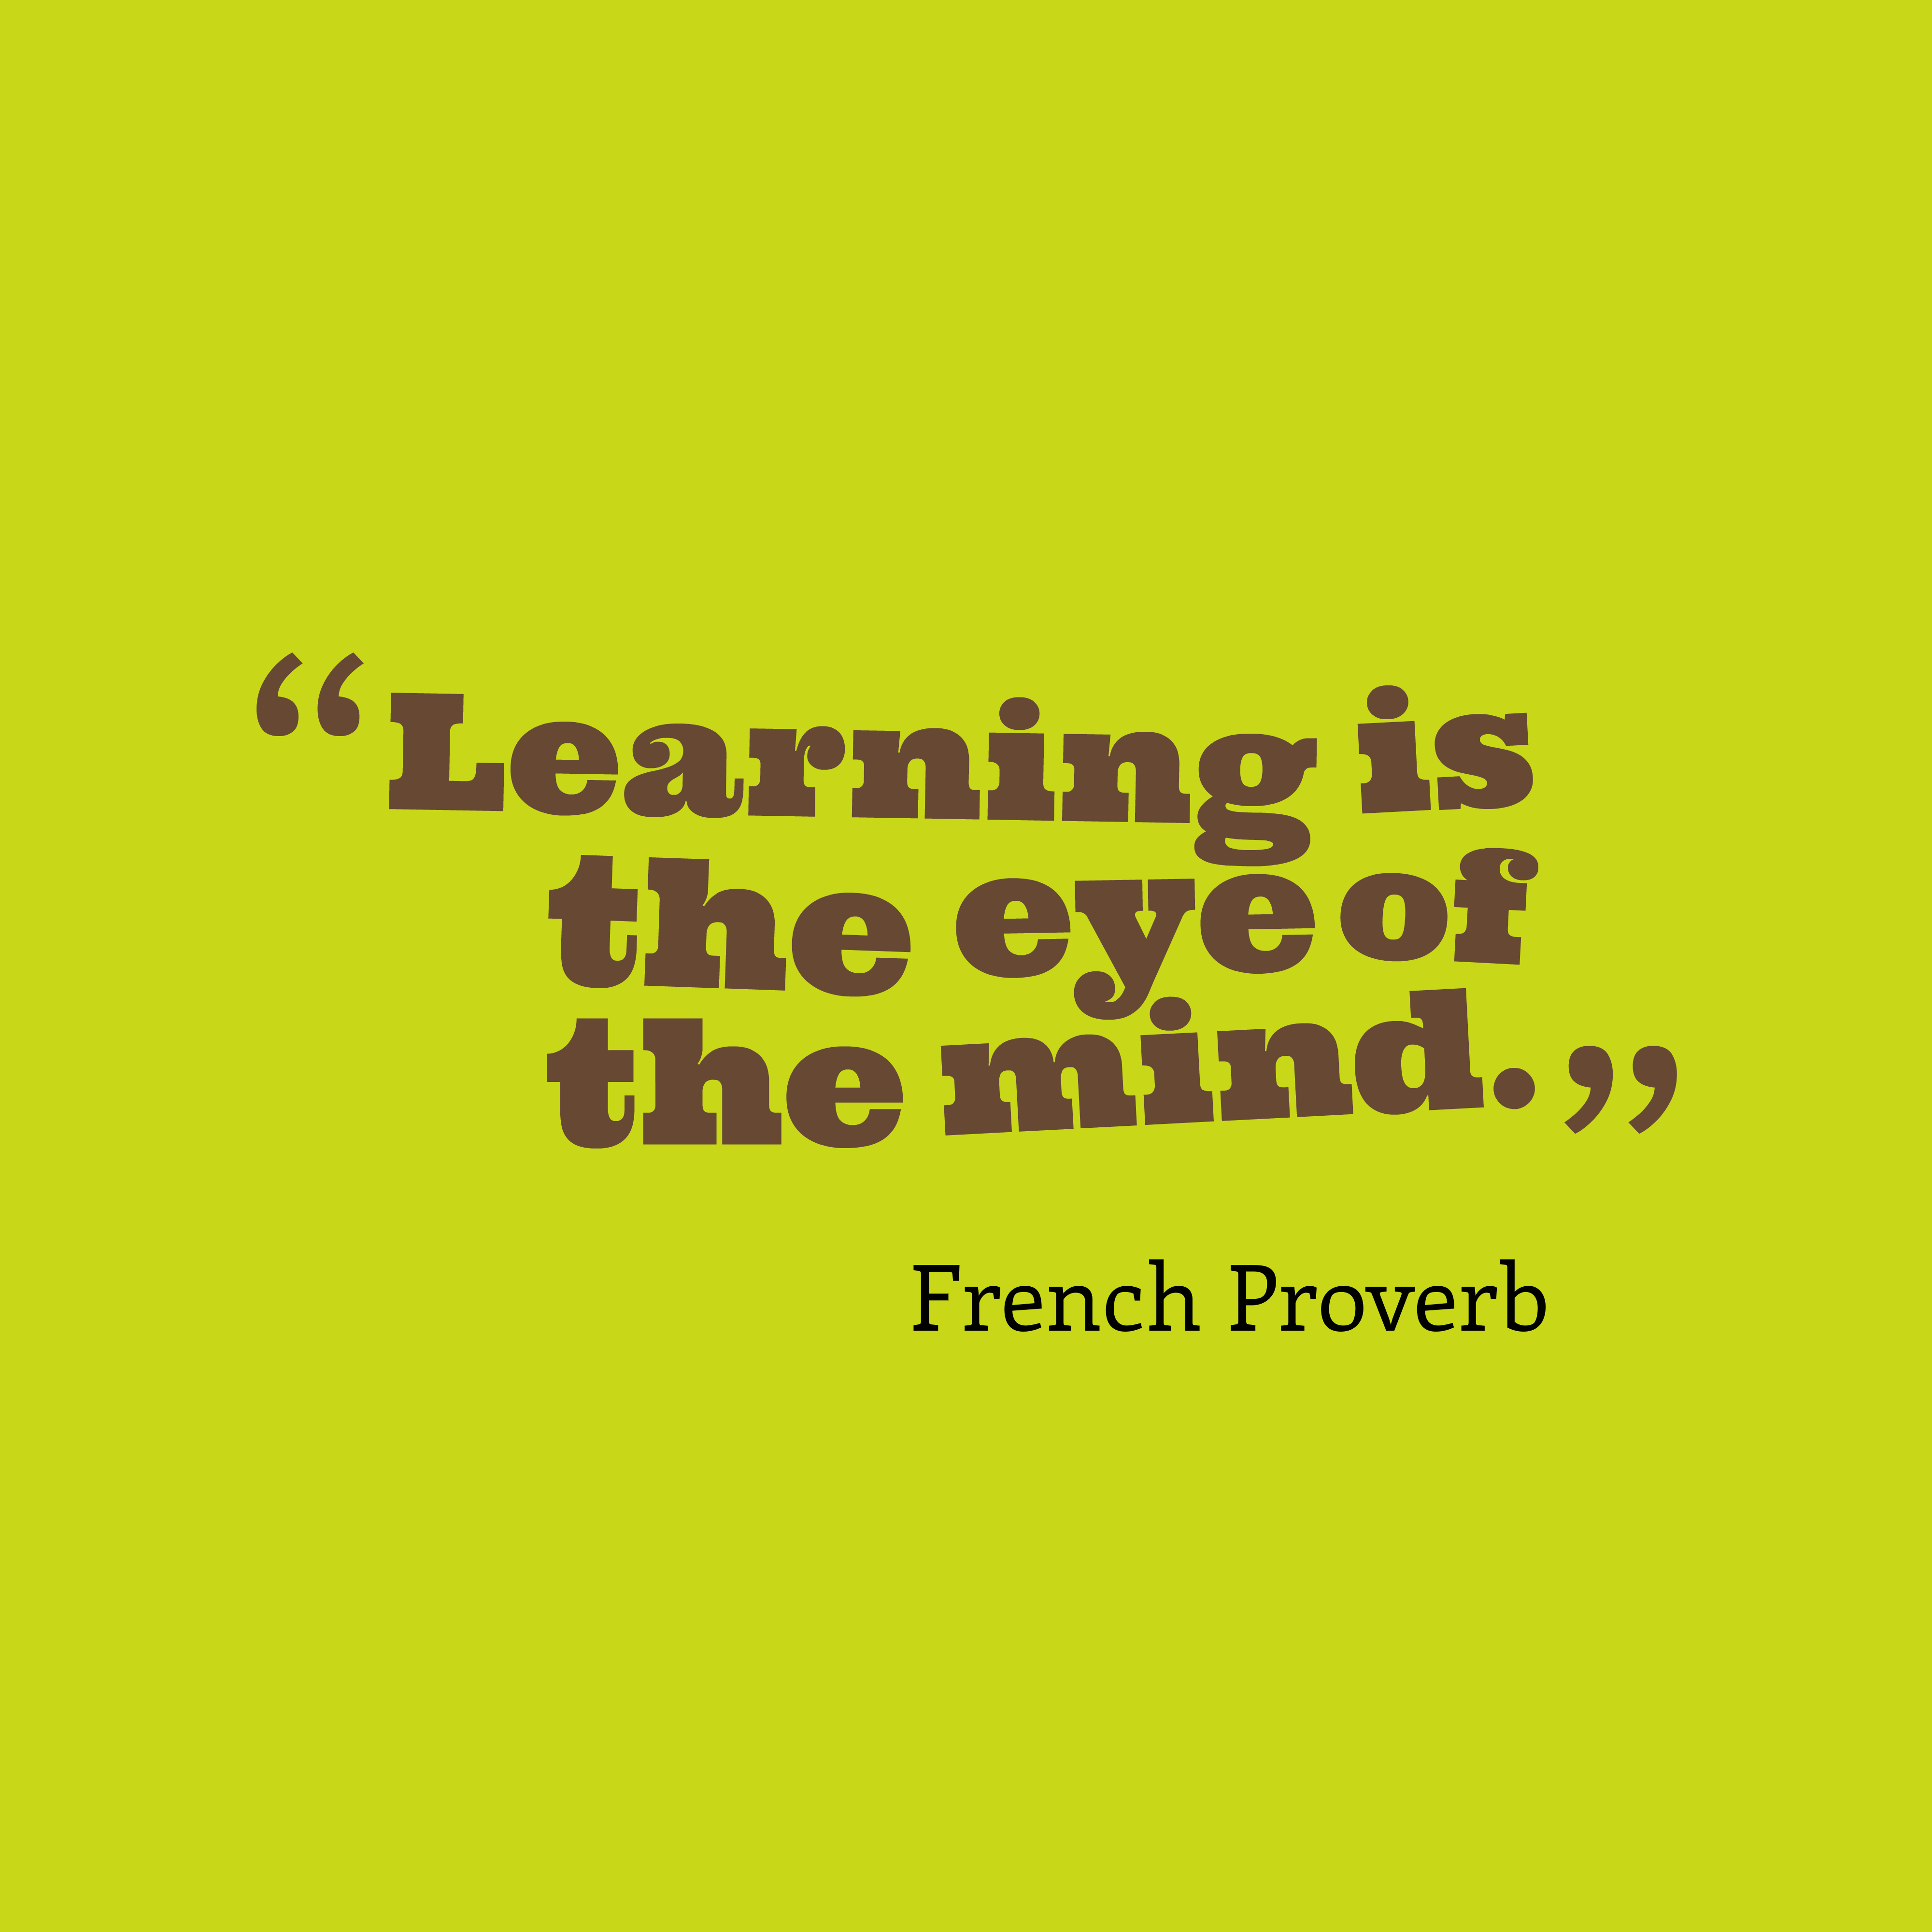 French Wisdom About Learning